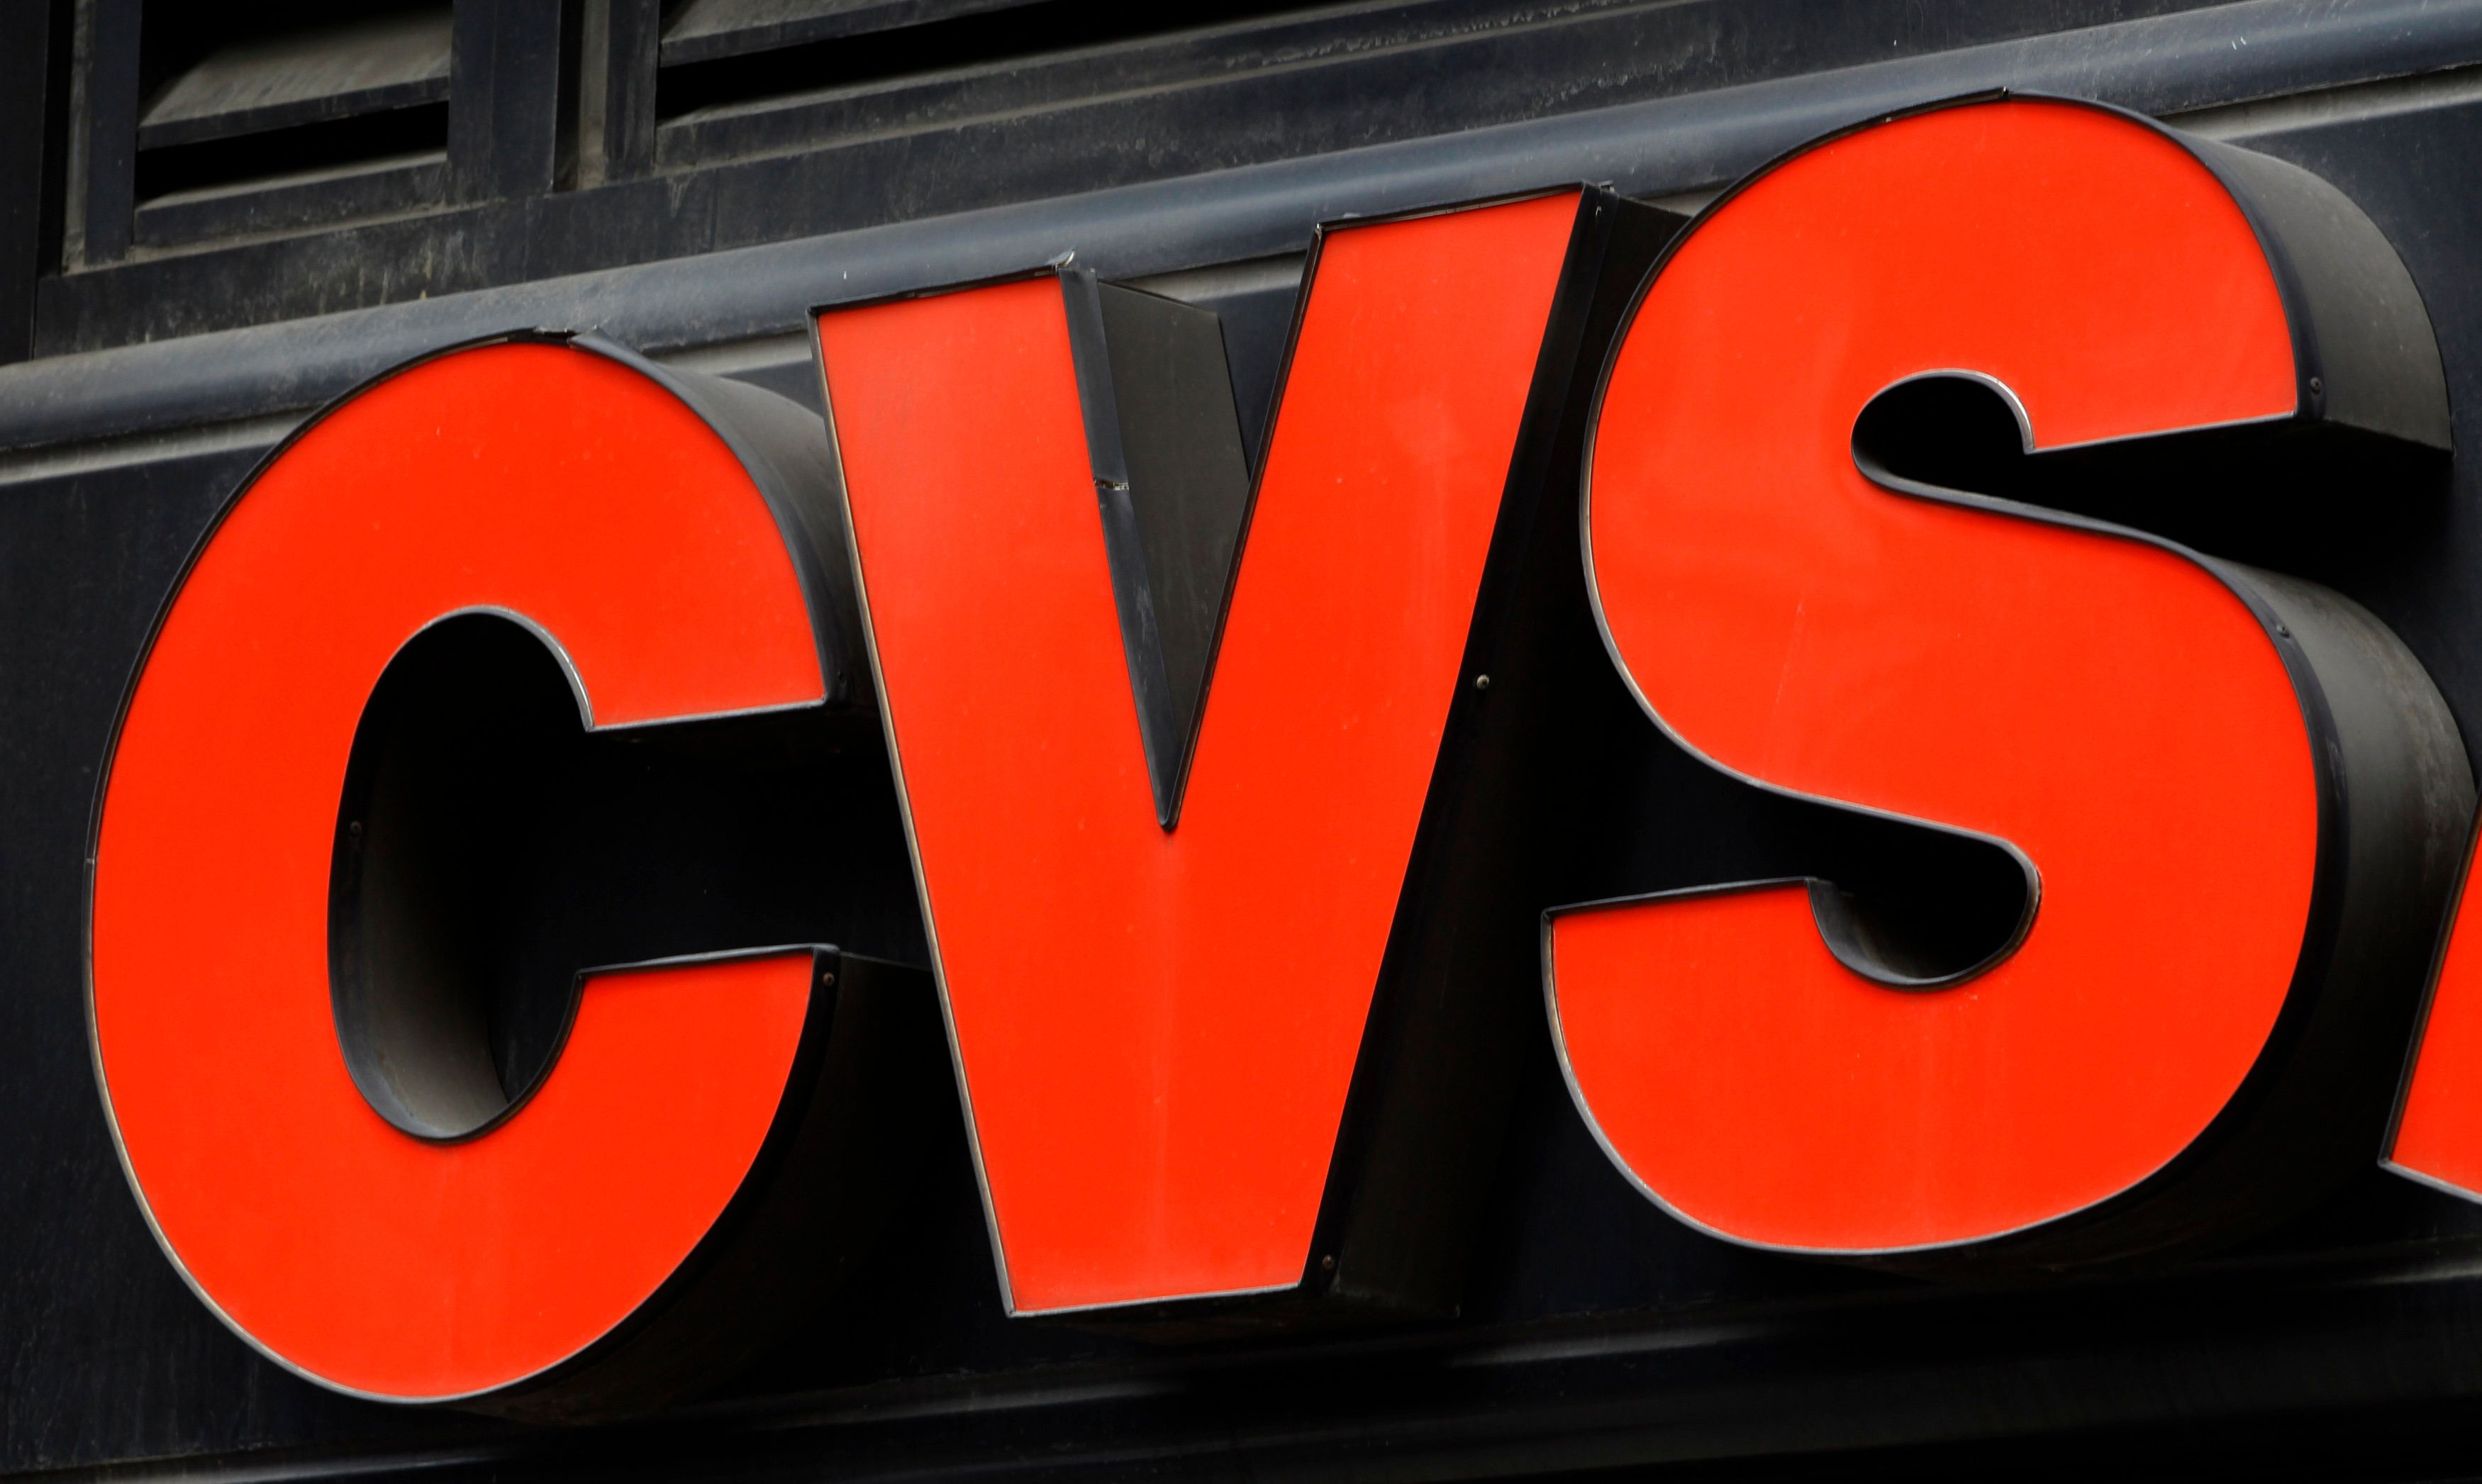 A CVS pharmacy is seen in New York City July 28, 2010. CVS Caremark Corp reported lower second-quarter earnings and cut its 2010 profit forecast, hurt by a decline in revenue from its pharmacy services segment, sending its shares down 5 percent.  REUTERS/Mike Segar   (UNITED STATES - Tags: BUSINESS)